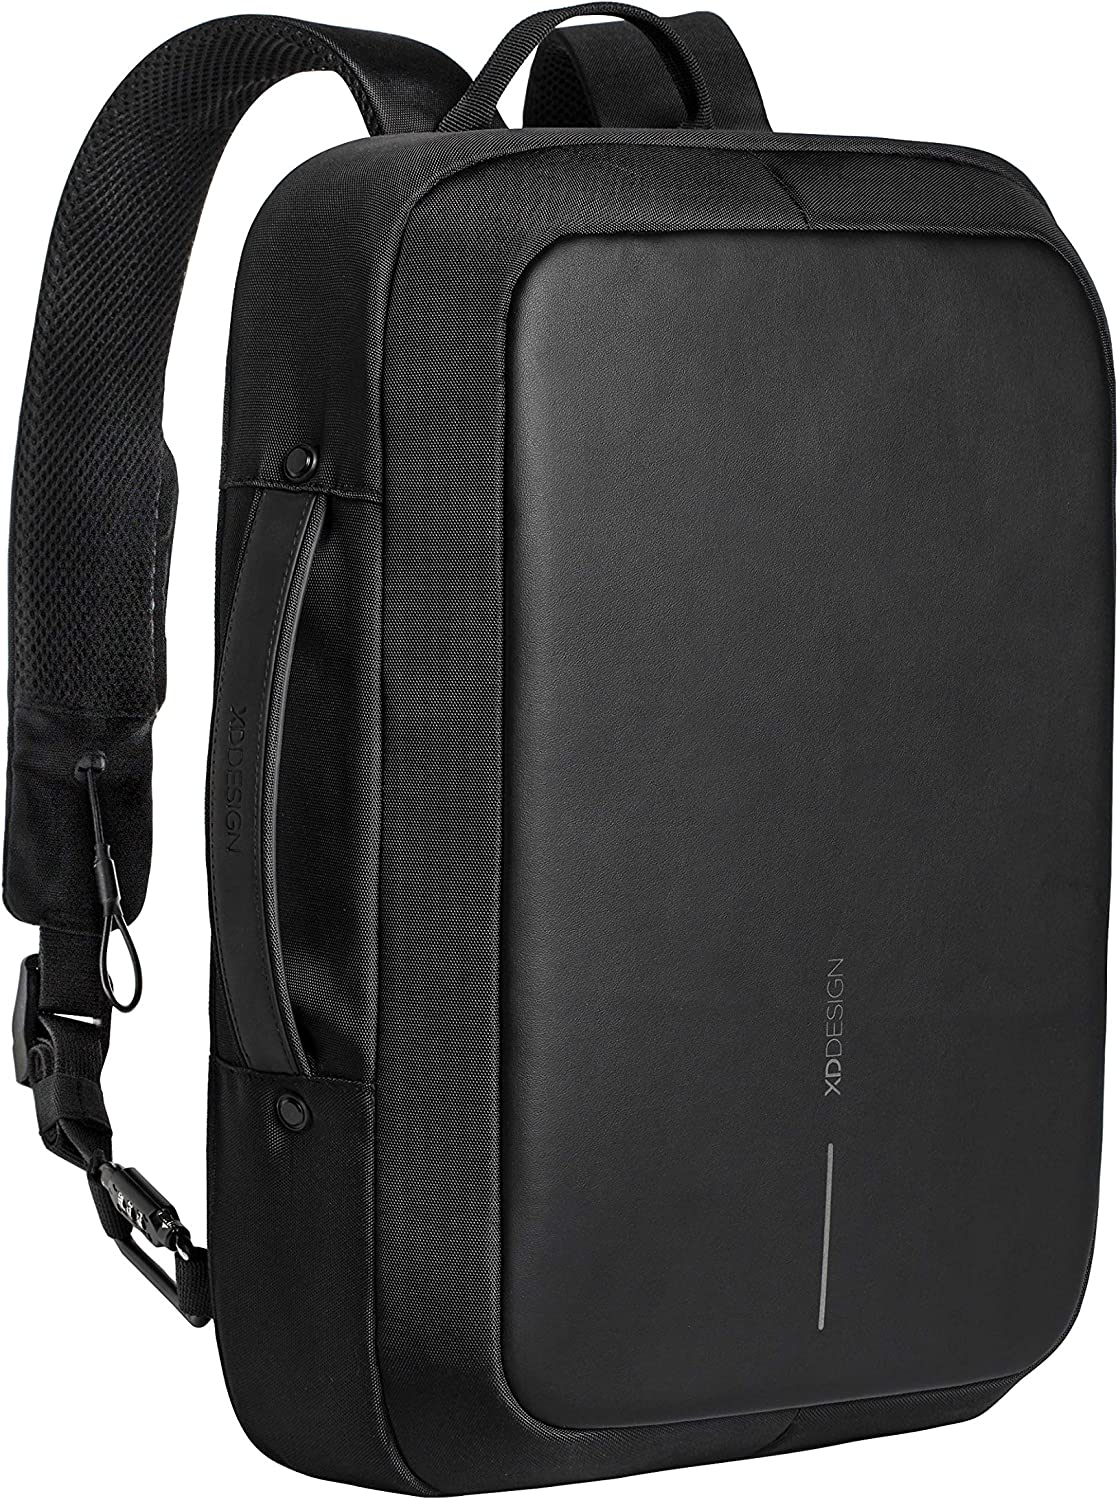 XD Design Bobby Bizz Anti-Theft Laptop Backpack & Briefcase USB (Unisex Bag)